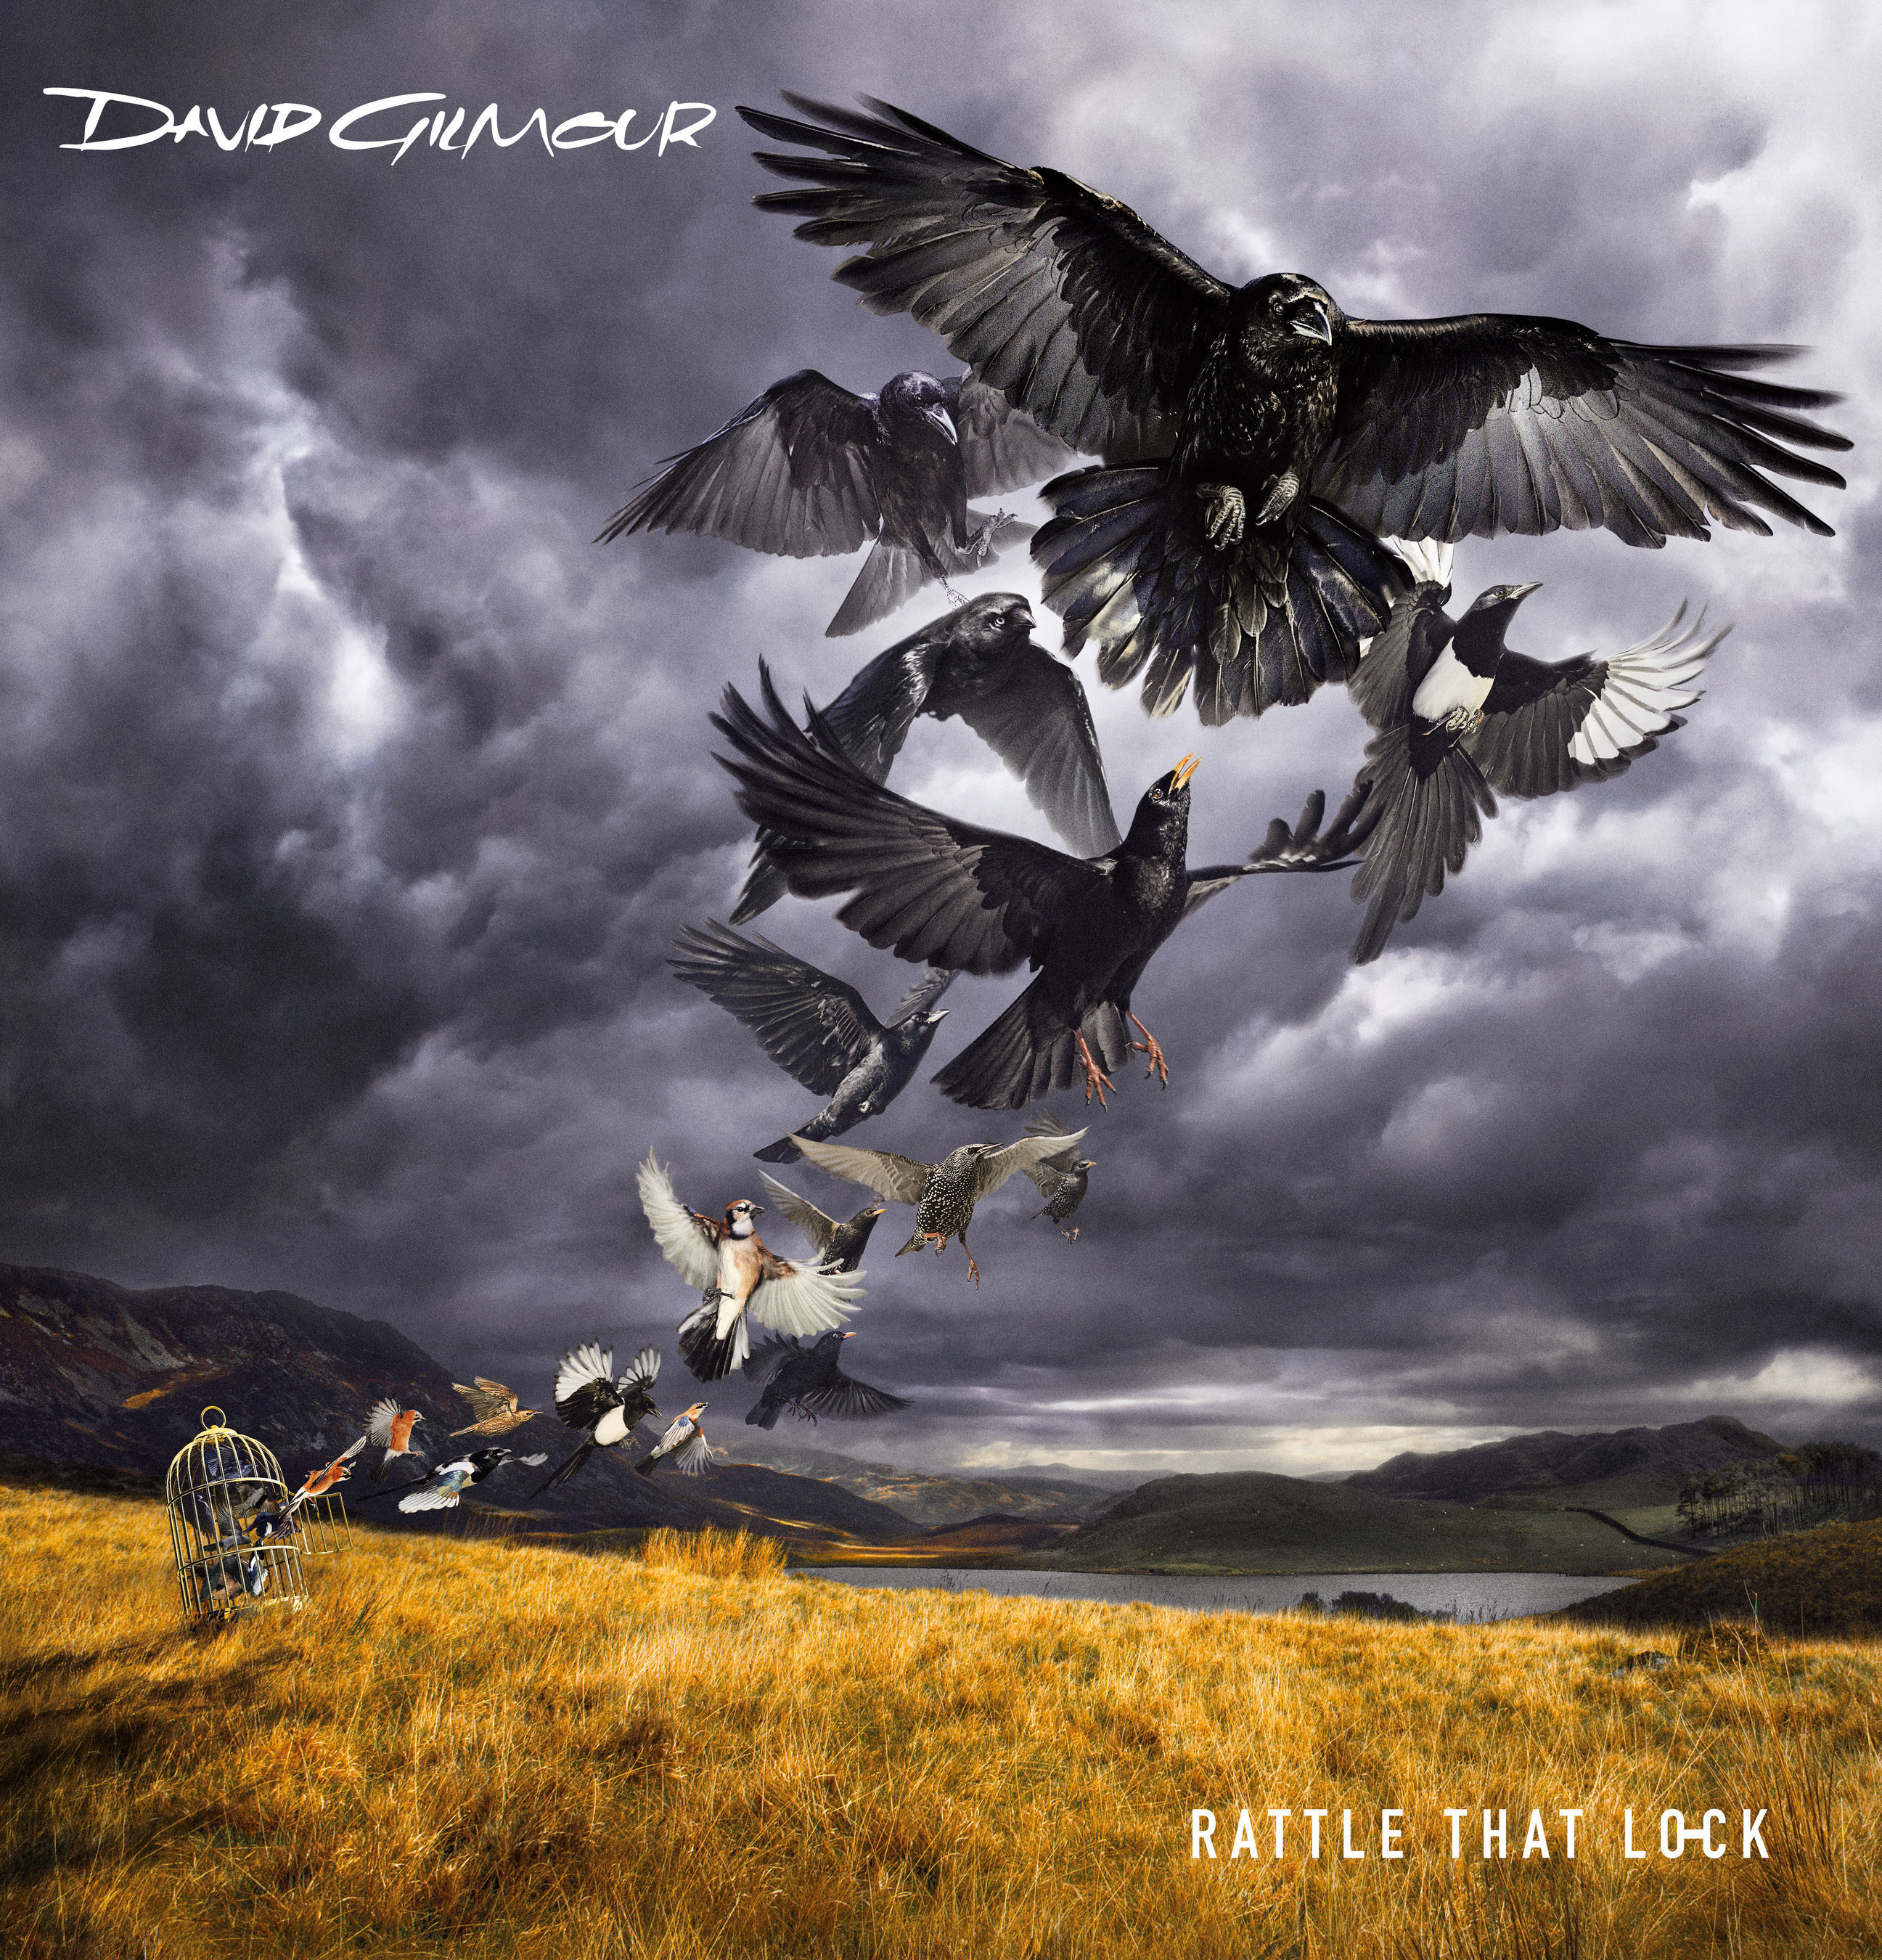 """DAVID GILMOUR TO RELEASE NEW ALBUM, """"RATTLE THAT LOCK"""" FRIDAY, SEPTEMBER 18, 2015"""